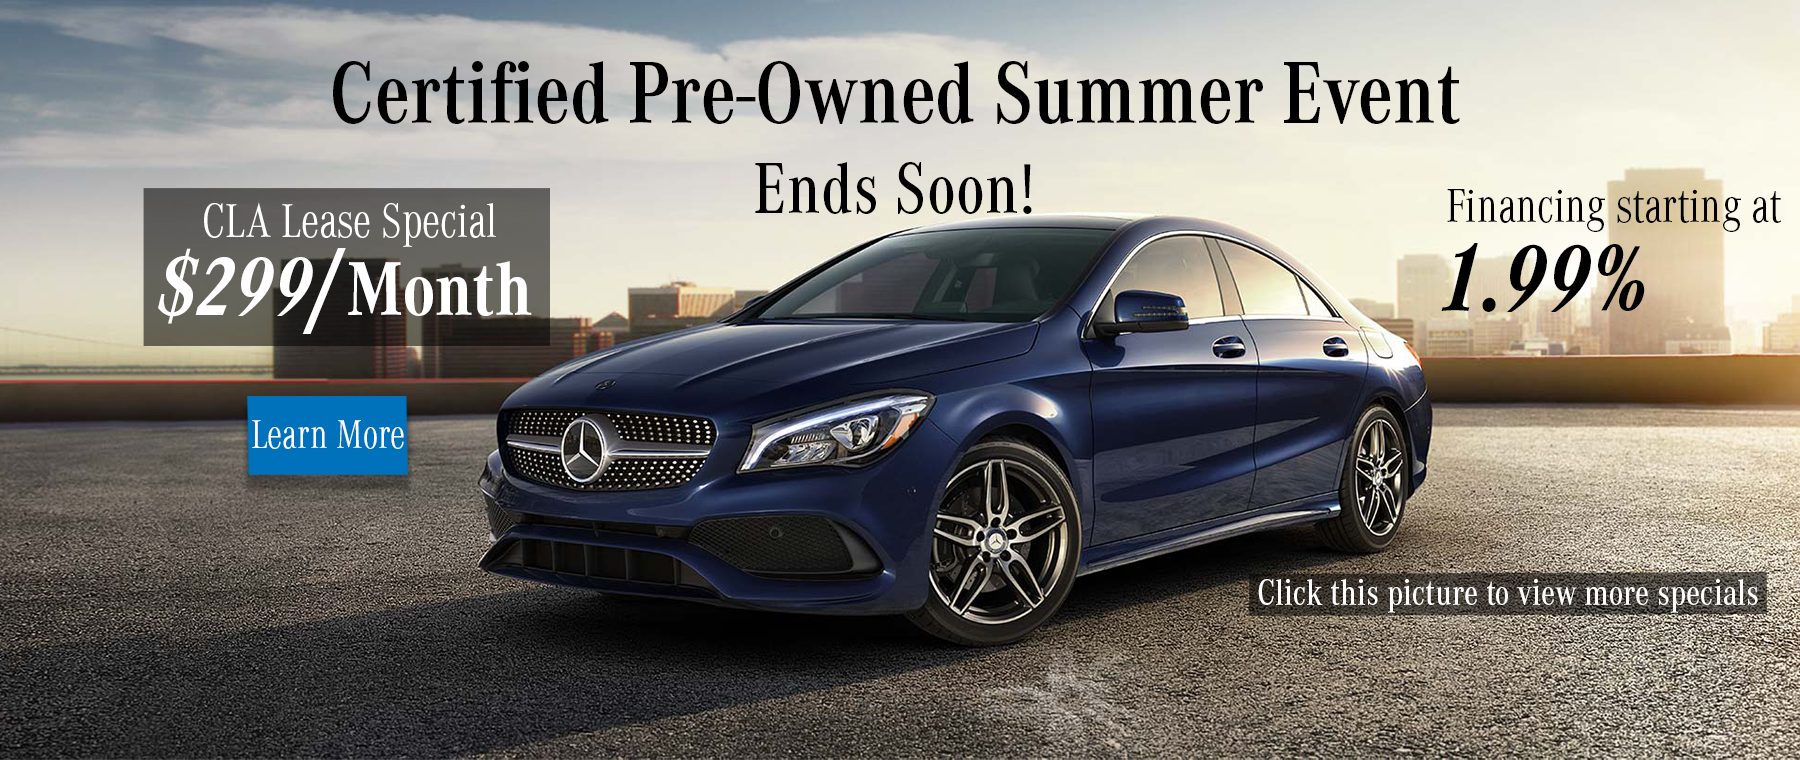 Mercedes-Benz of Springfield | Mercedes-Benz Dealer in Chicopee, MA